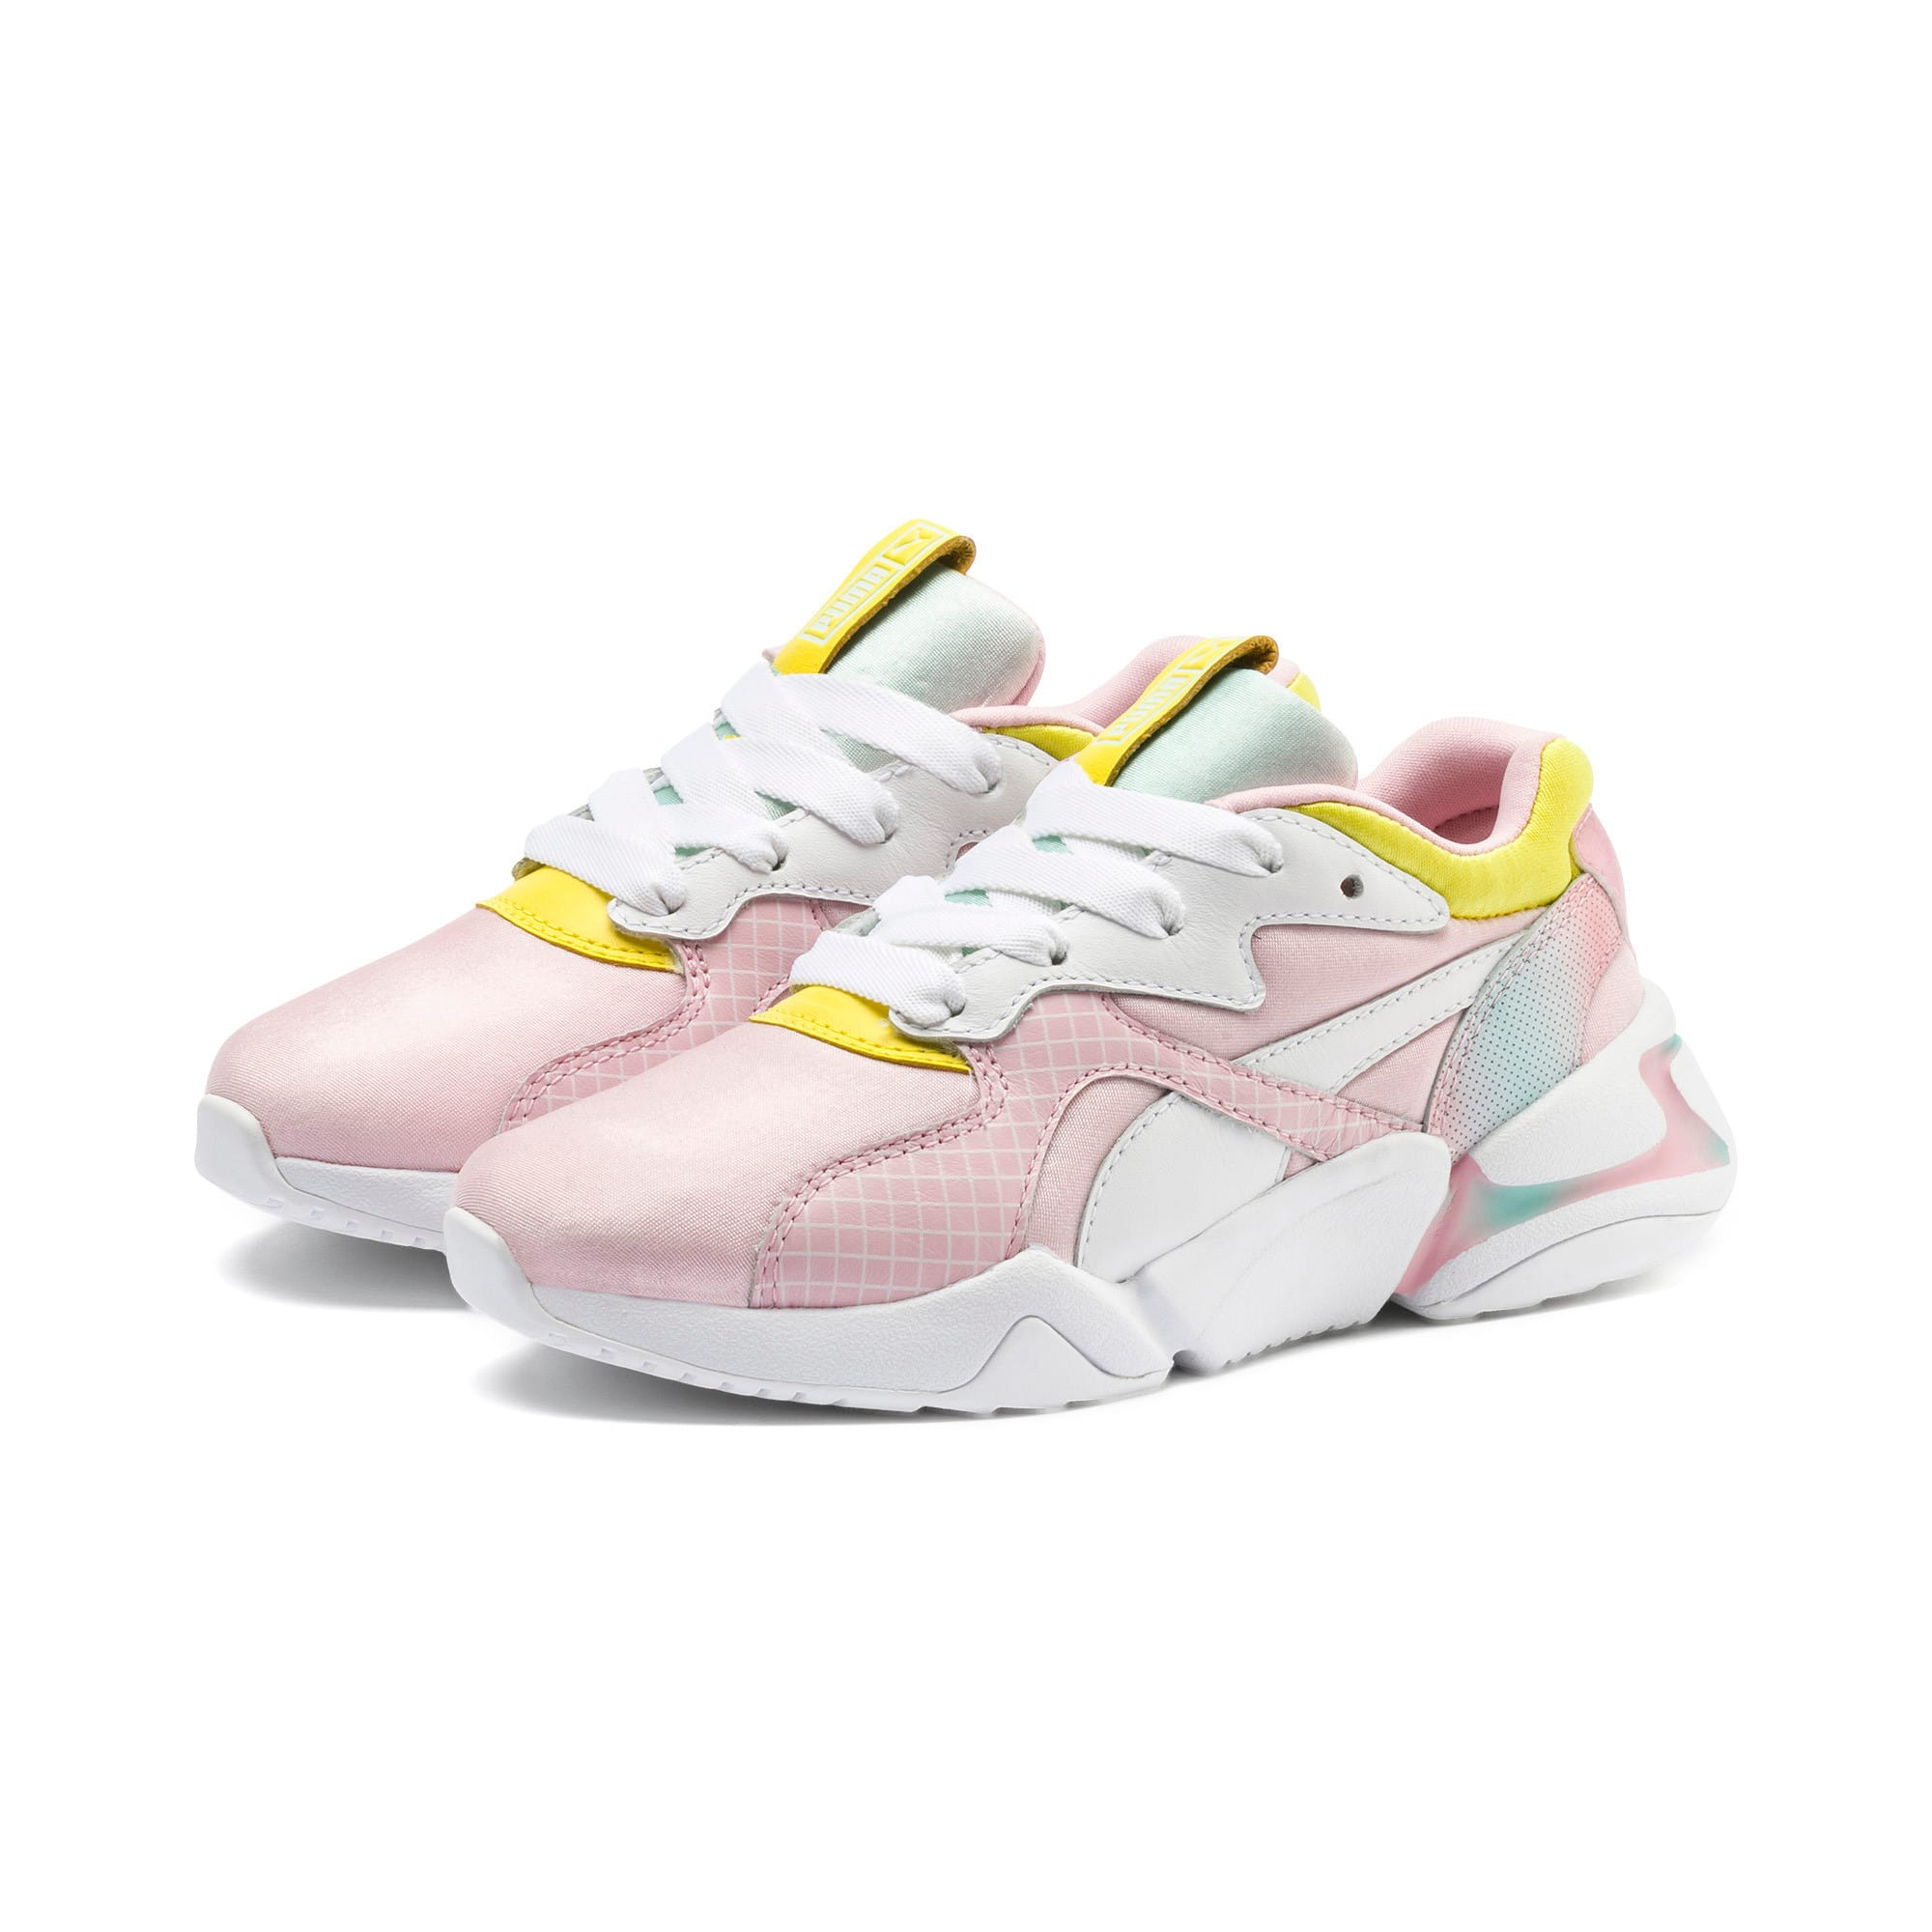 Thumbnail 2 of Nova x Barbie Little Kids' Shoes, Orchid Pink-Puma White, medium